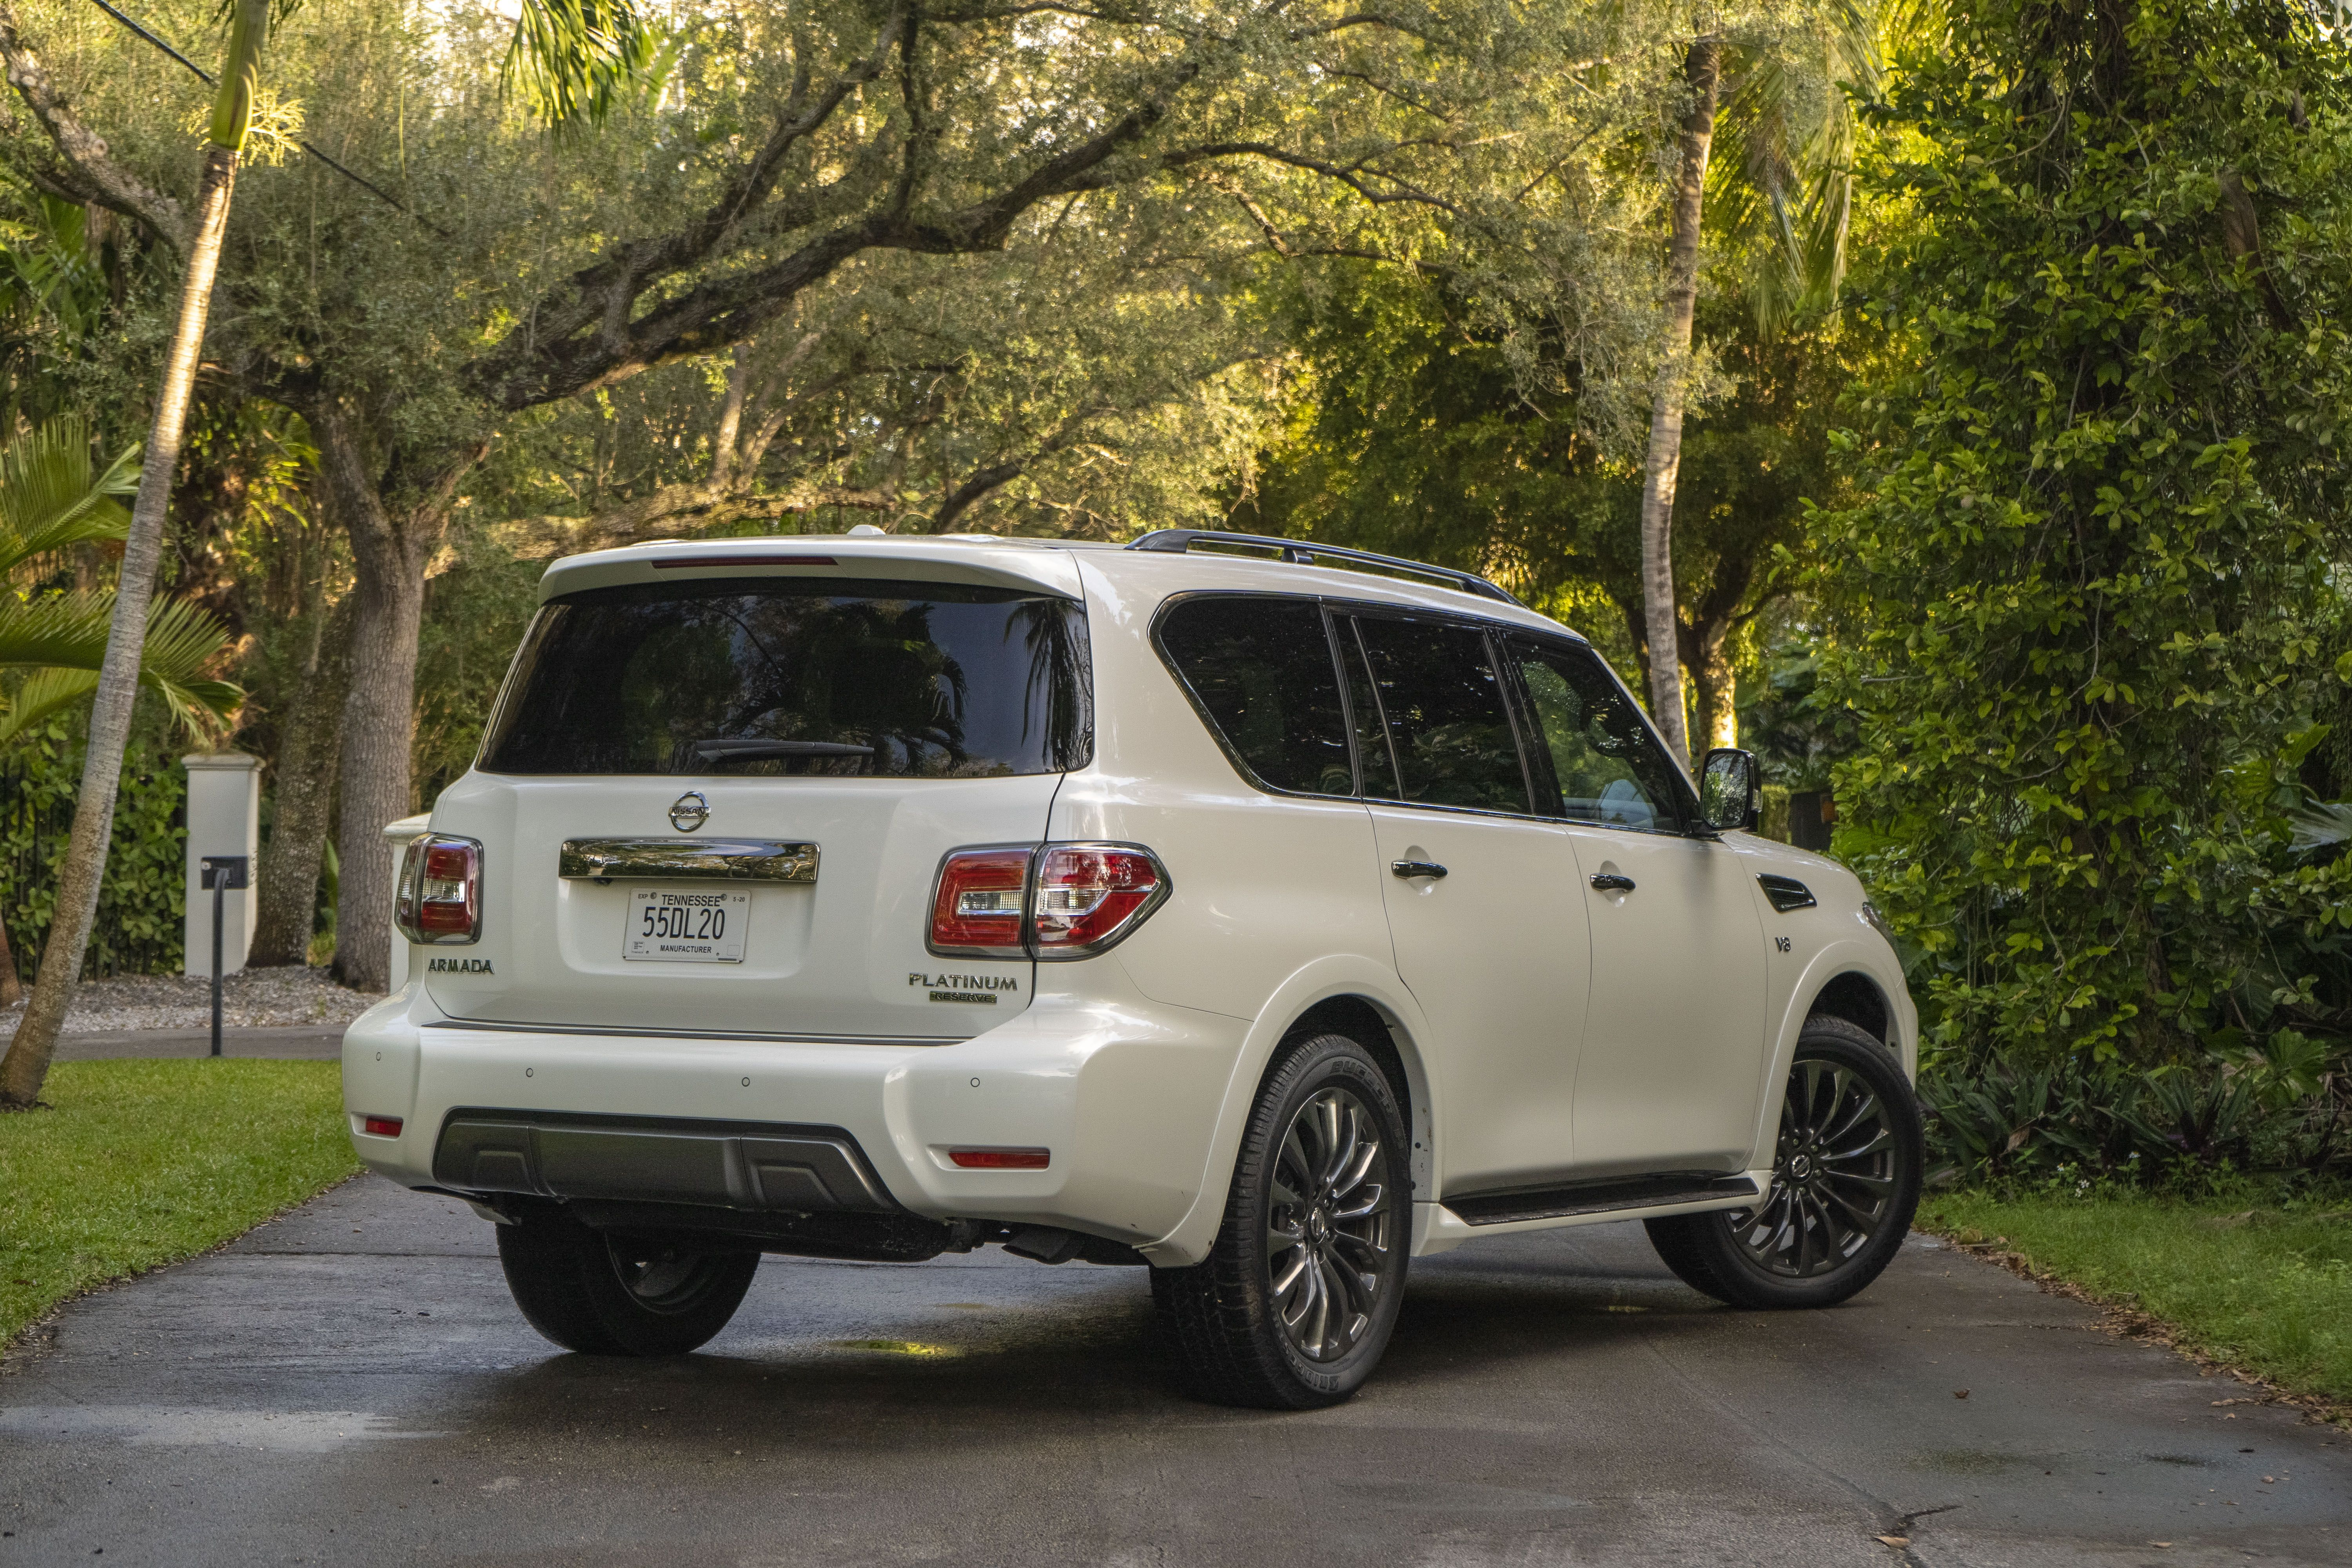 2020 Nissan Armada Driven Review And Impressions In 2020 Nissan Armada Nissan Large Suv